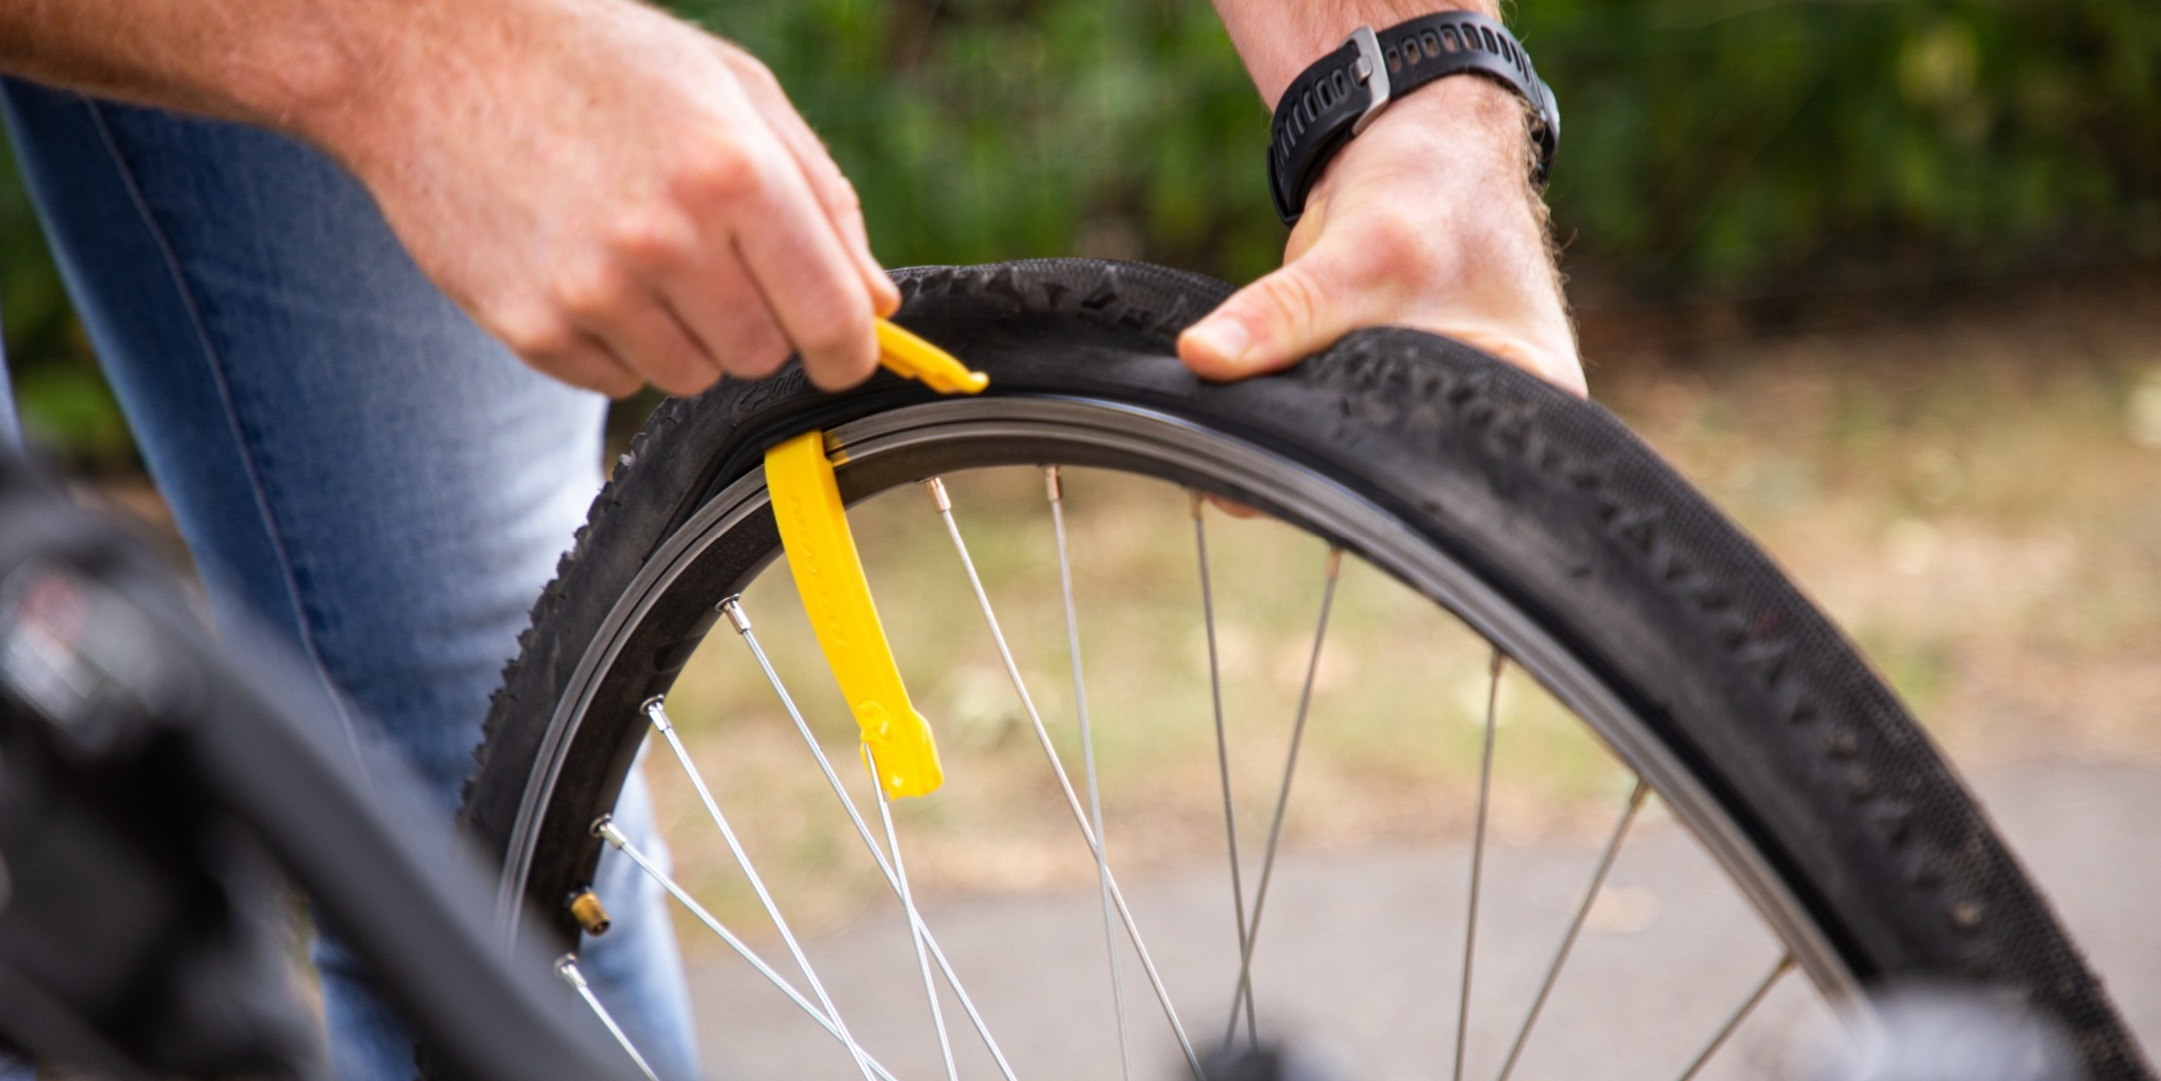 The Buyer's Guide To Puncture Repair Kits